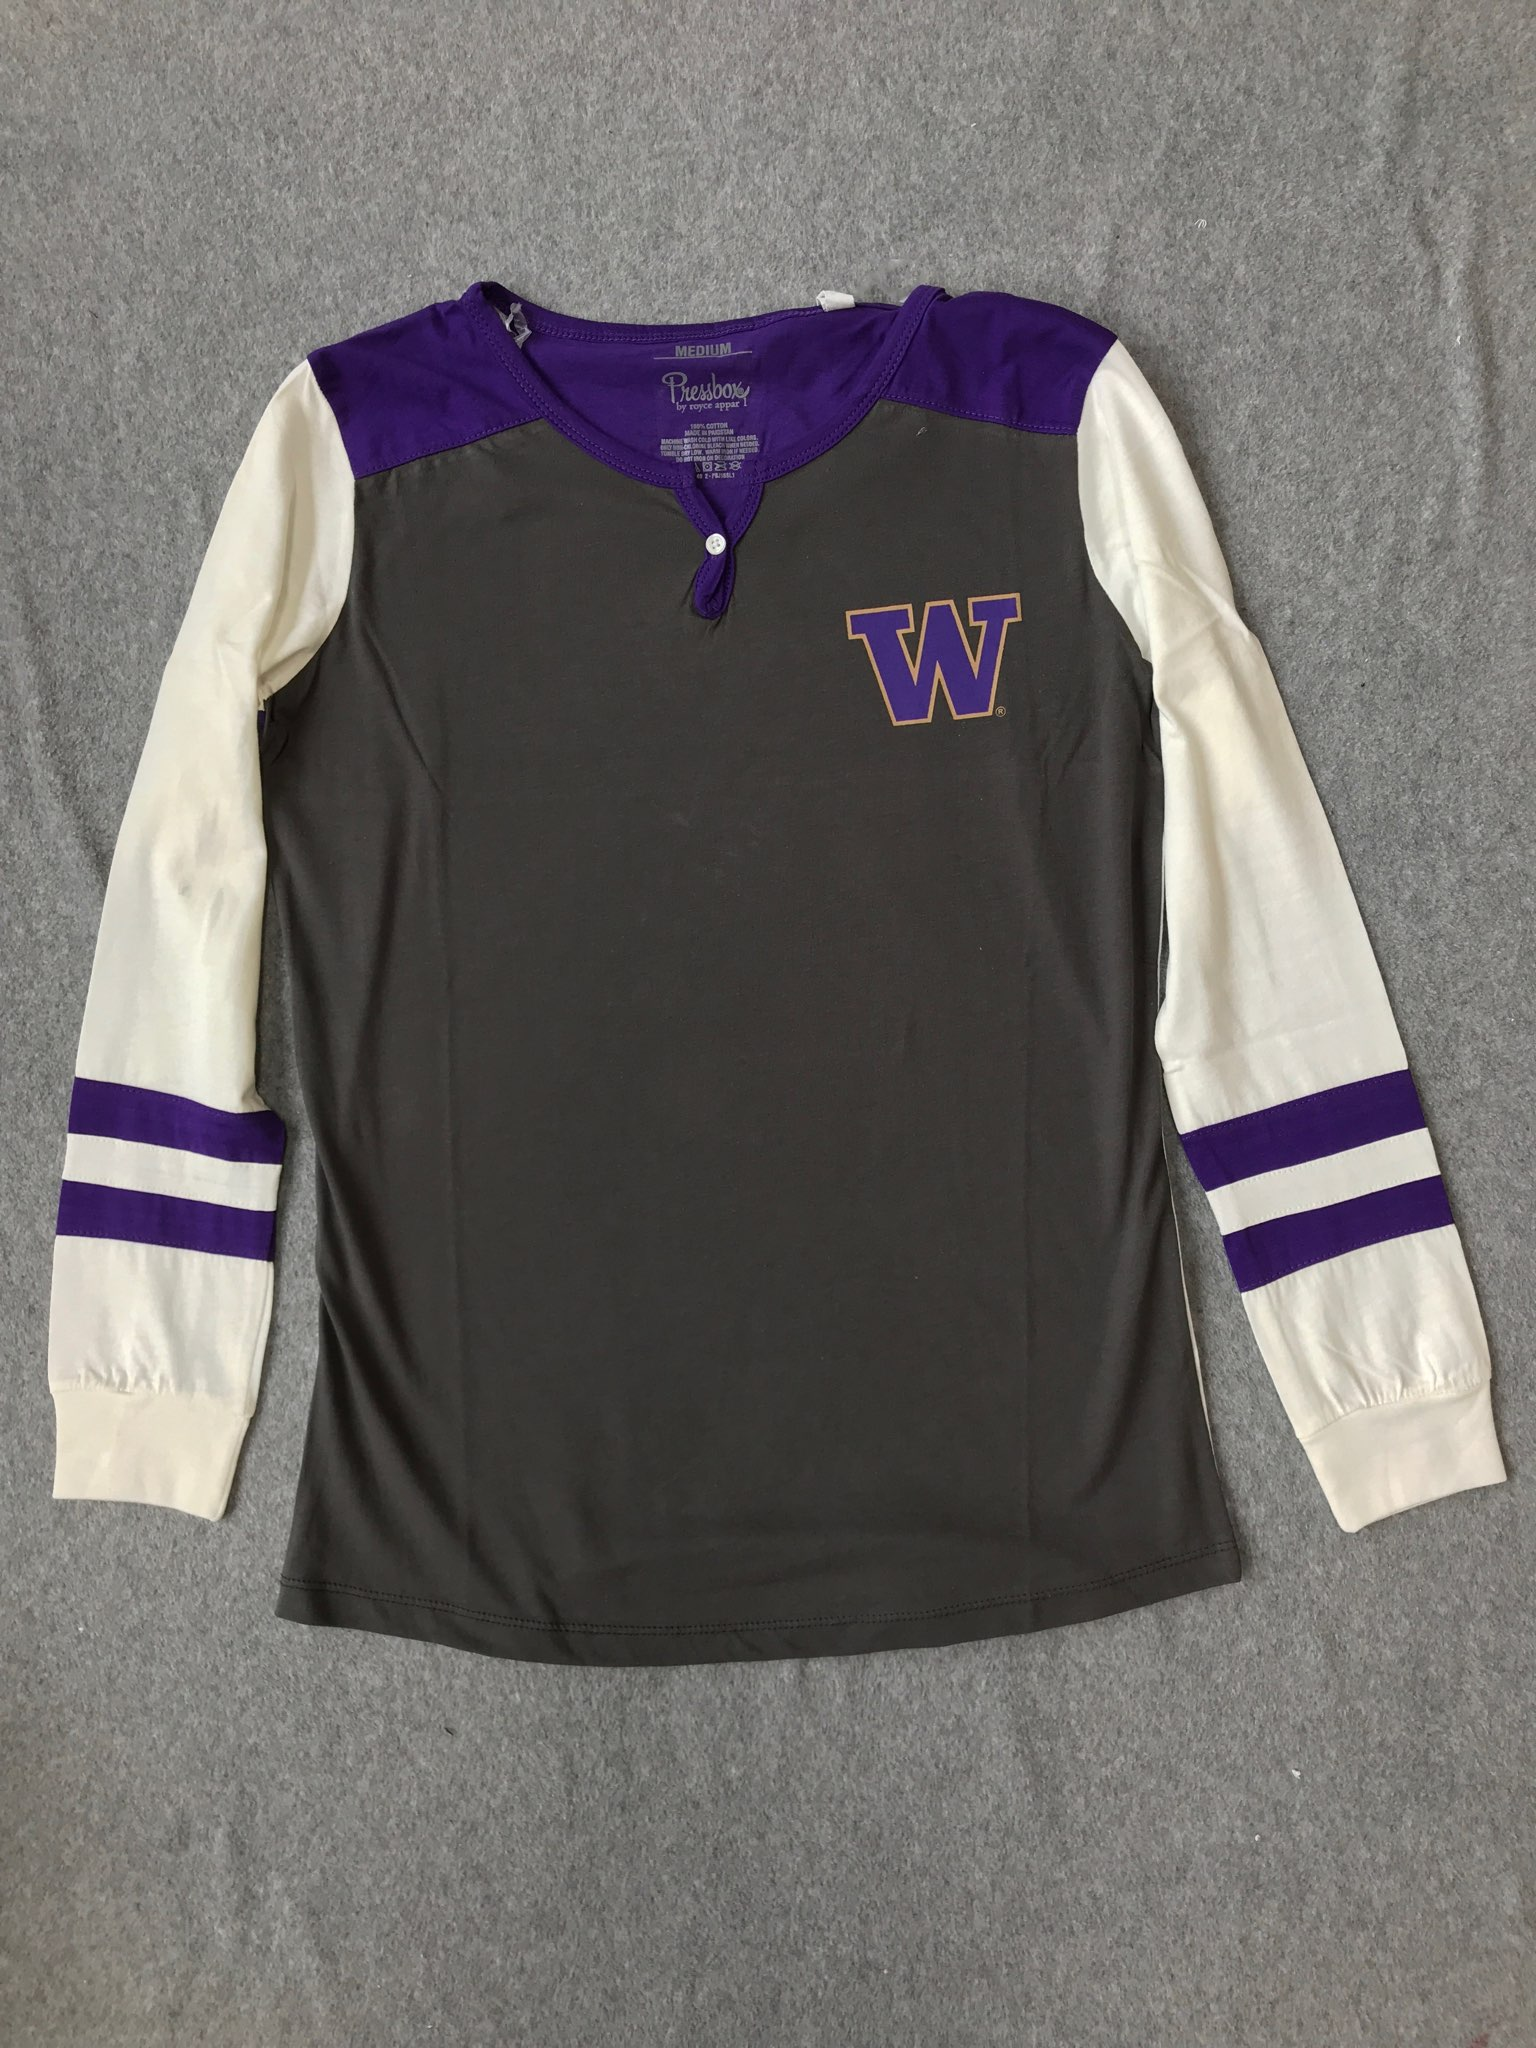 UW Ladies Baseball Tee longsleeve Size Large